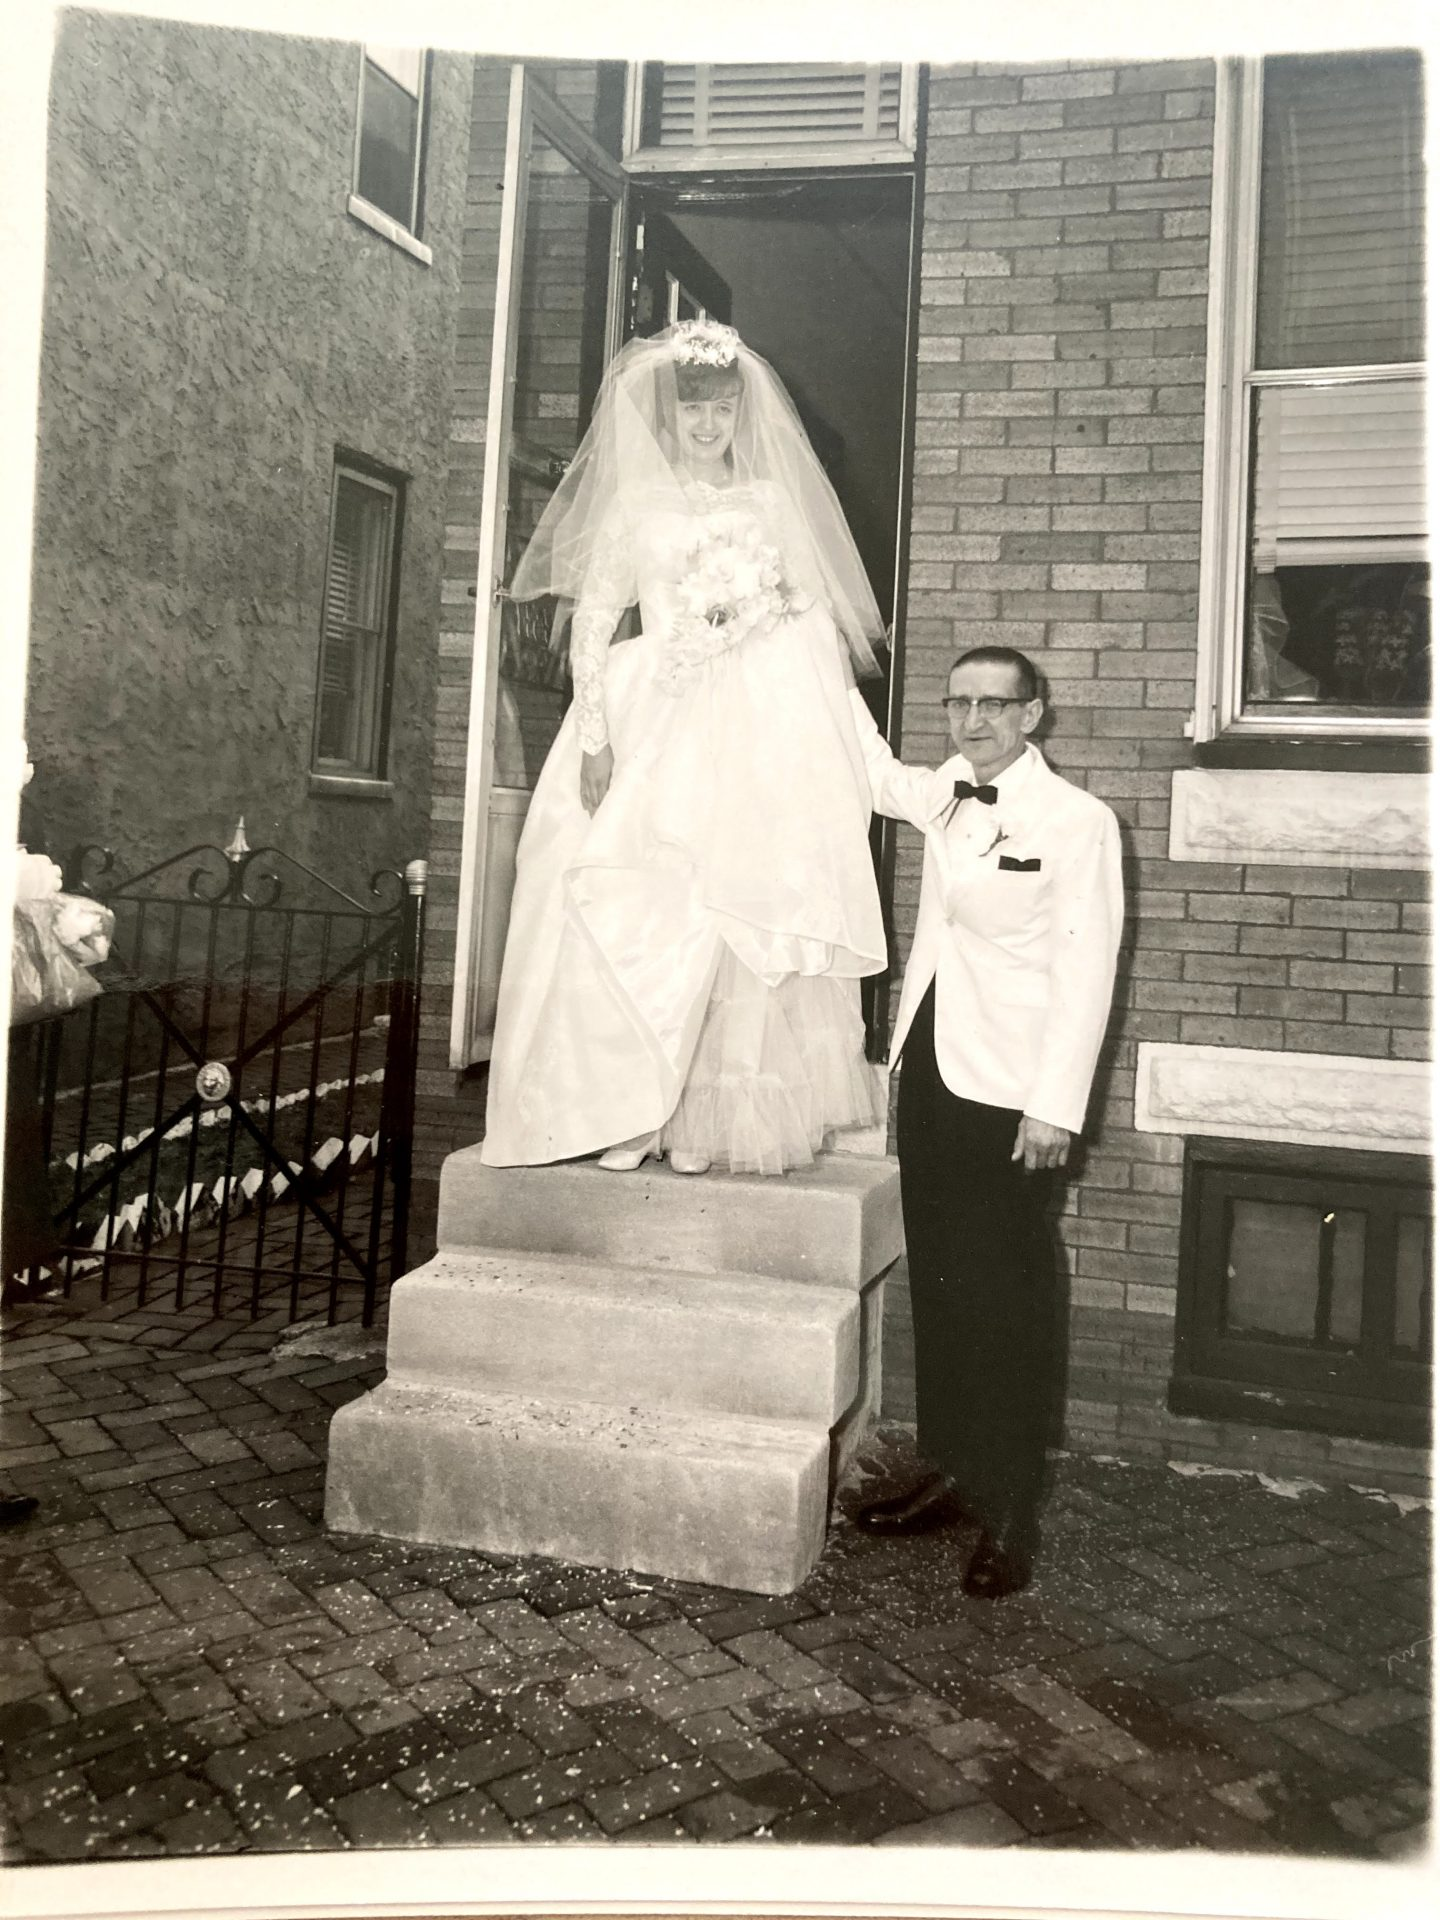 Charlotte and her father, John Karolczak, on her wedding day.